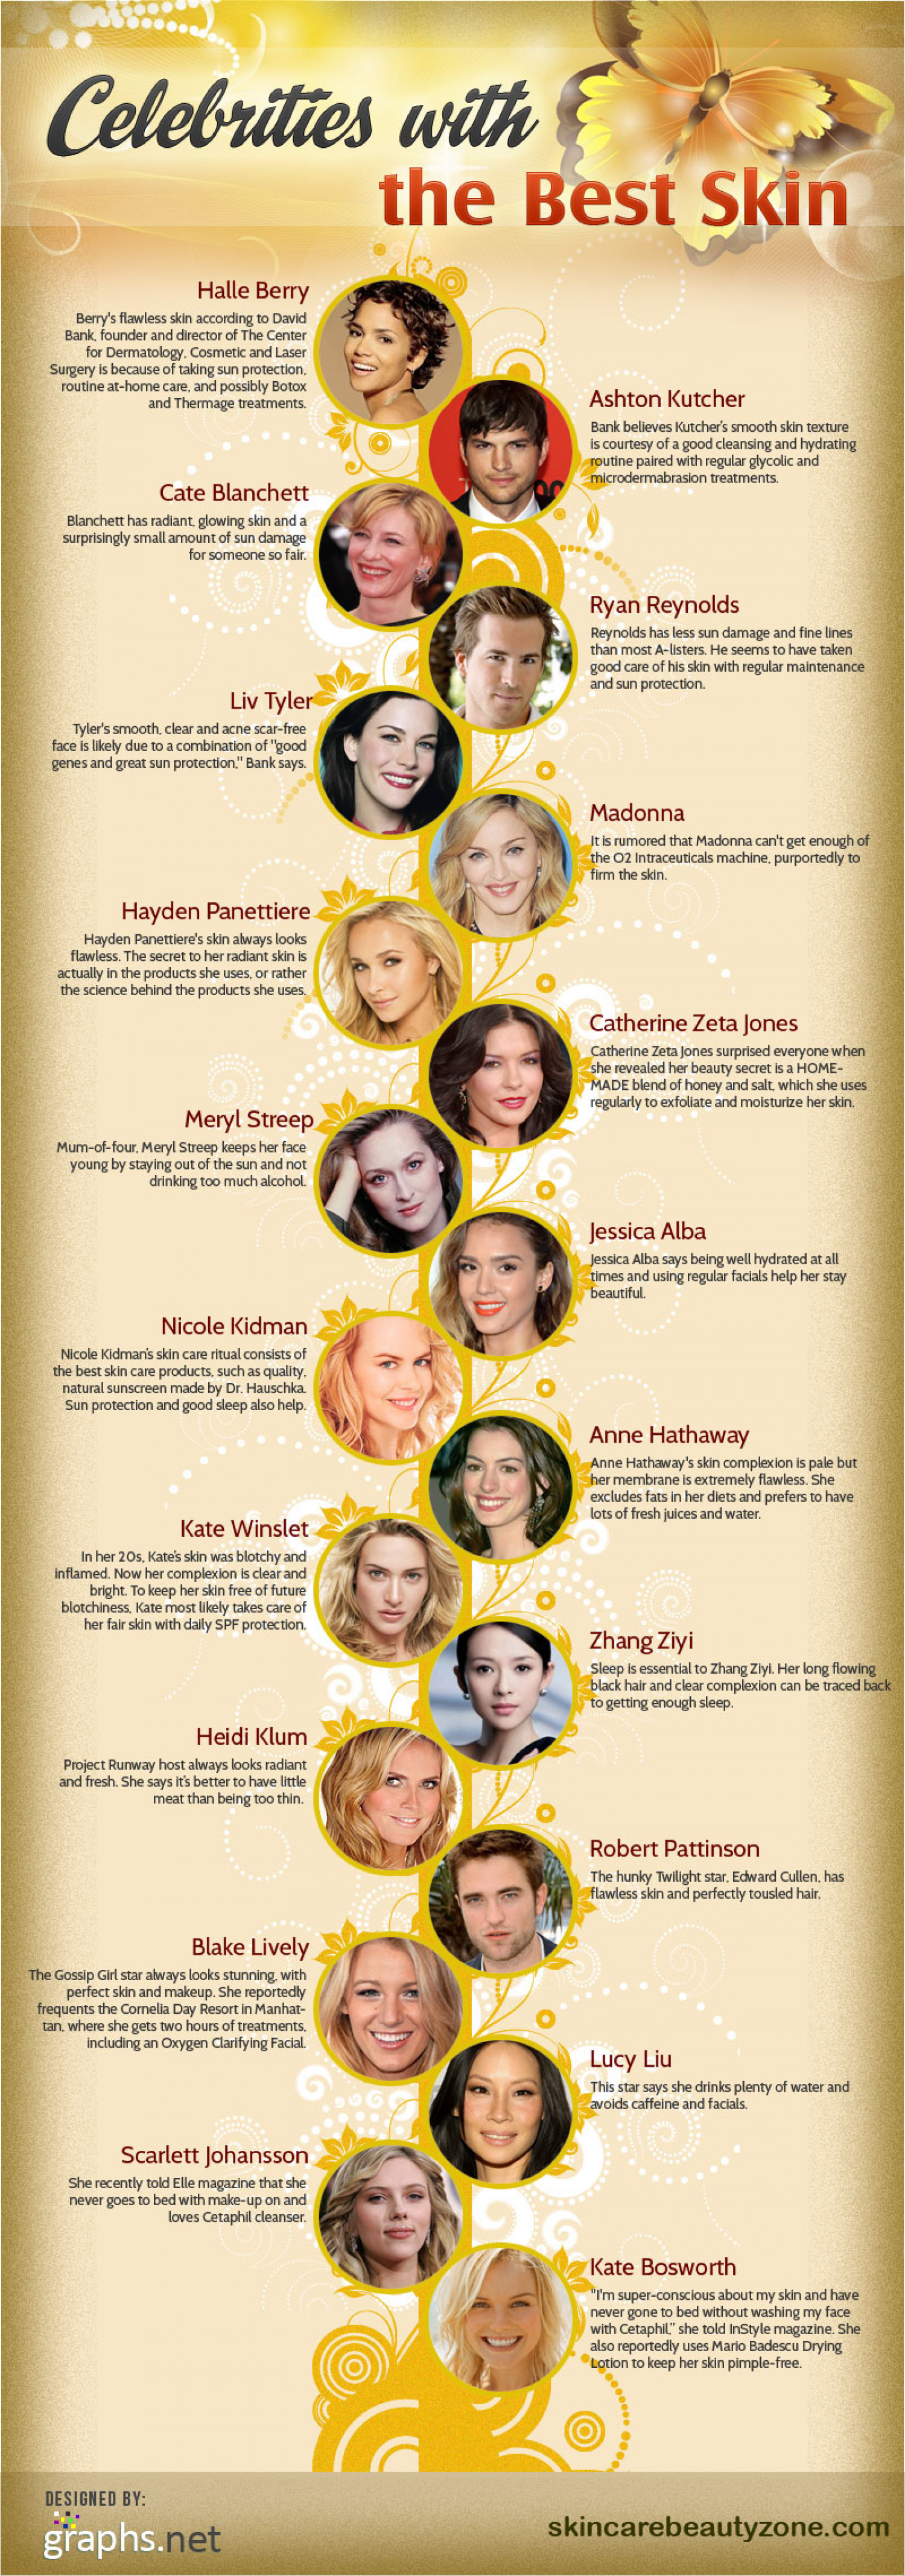 Celebrities with the Best Skin (Infographic) Infographic